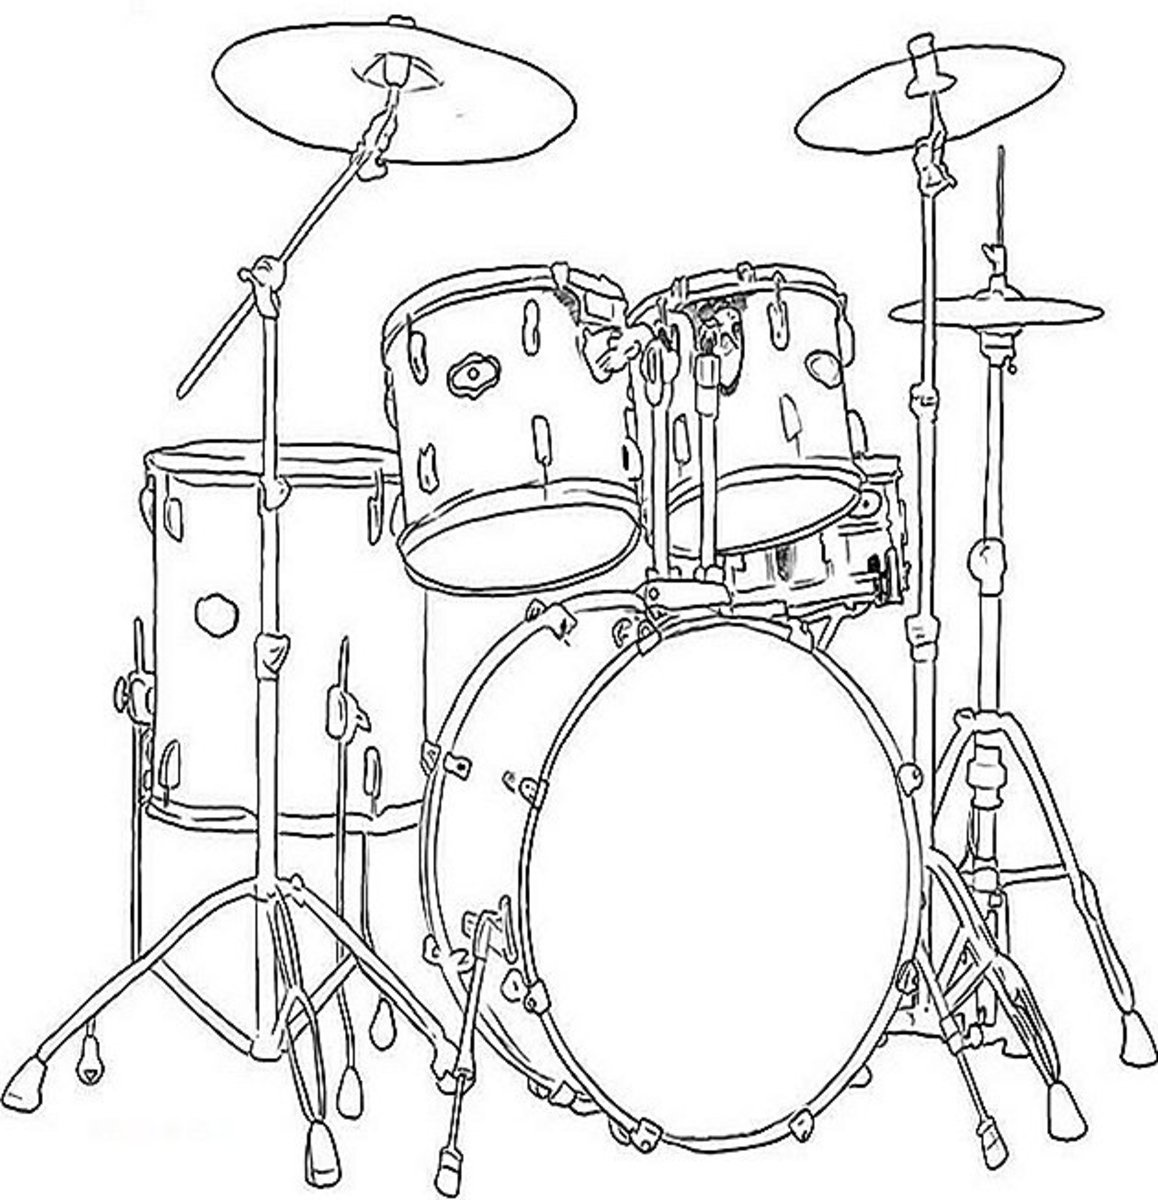 free printable coloring pages of musical instruments musical instruments coloring pages 11 jazz pinterest of printable musical pages instruments coloring free